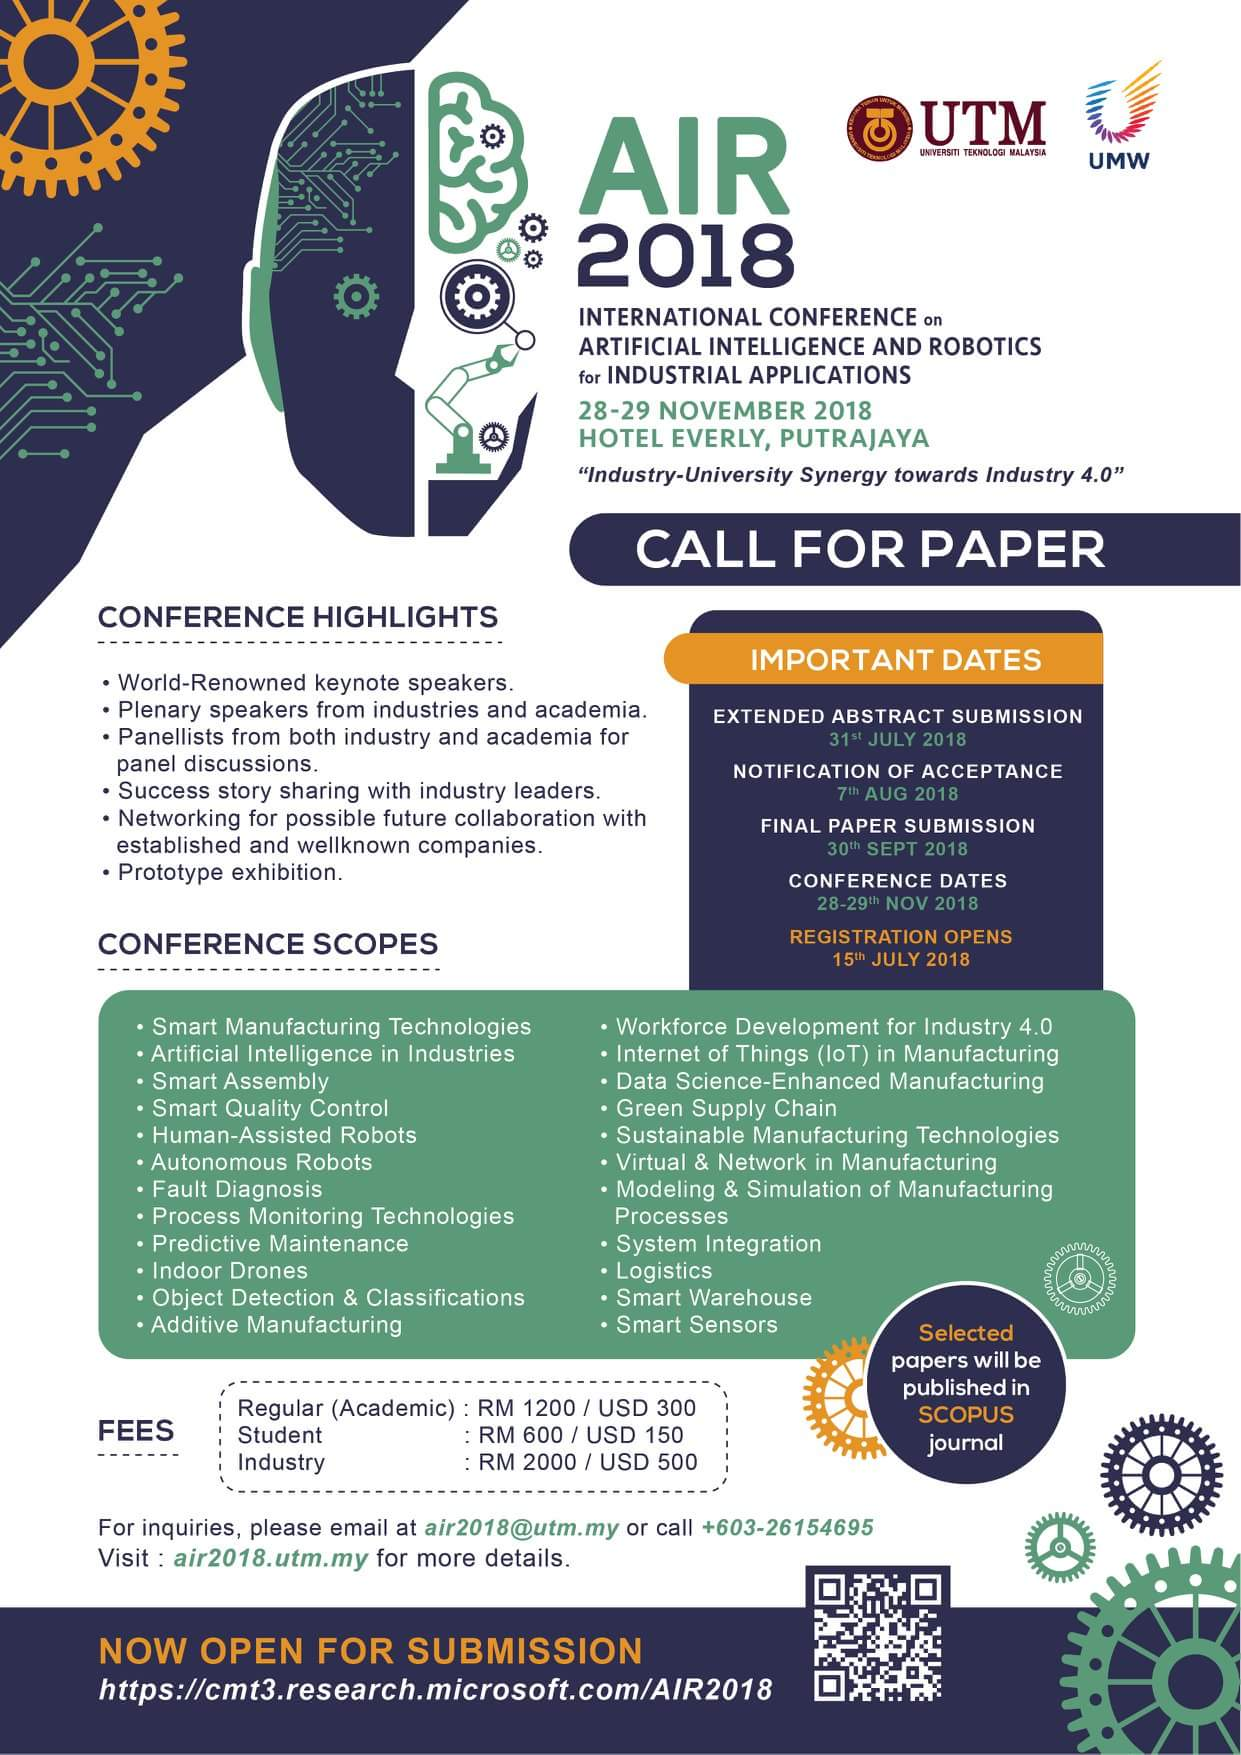 Last date for AIR2018 abstract submission